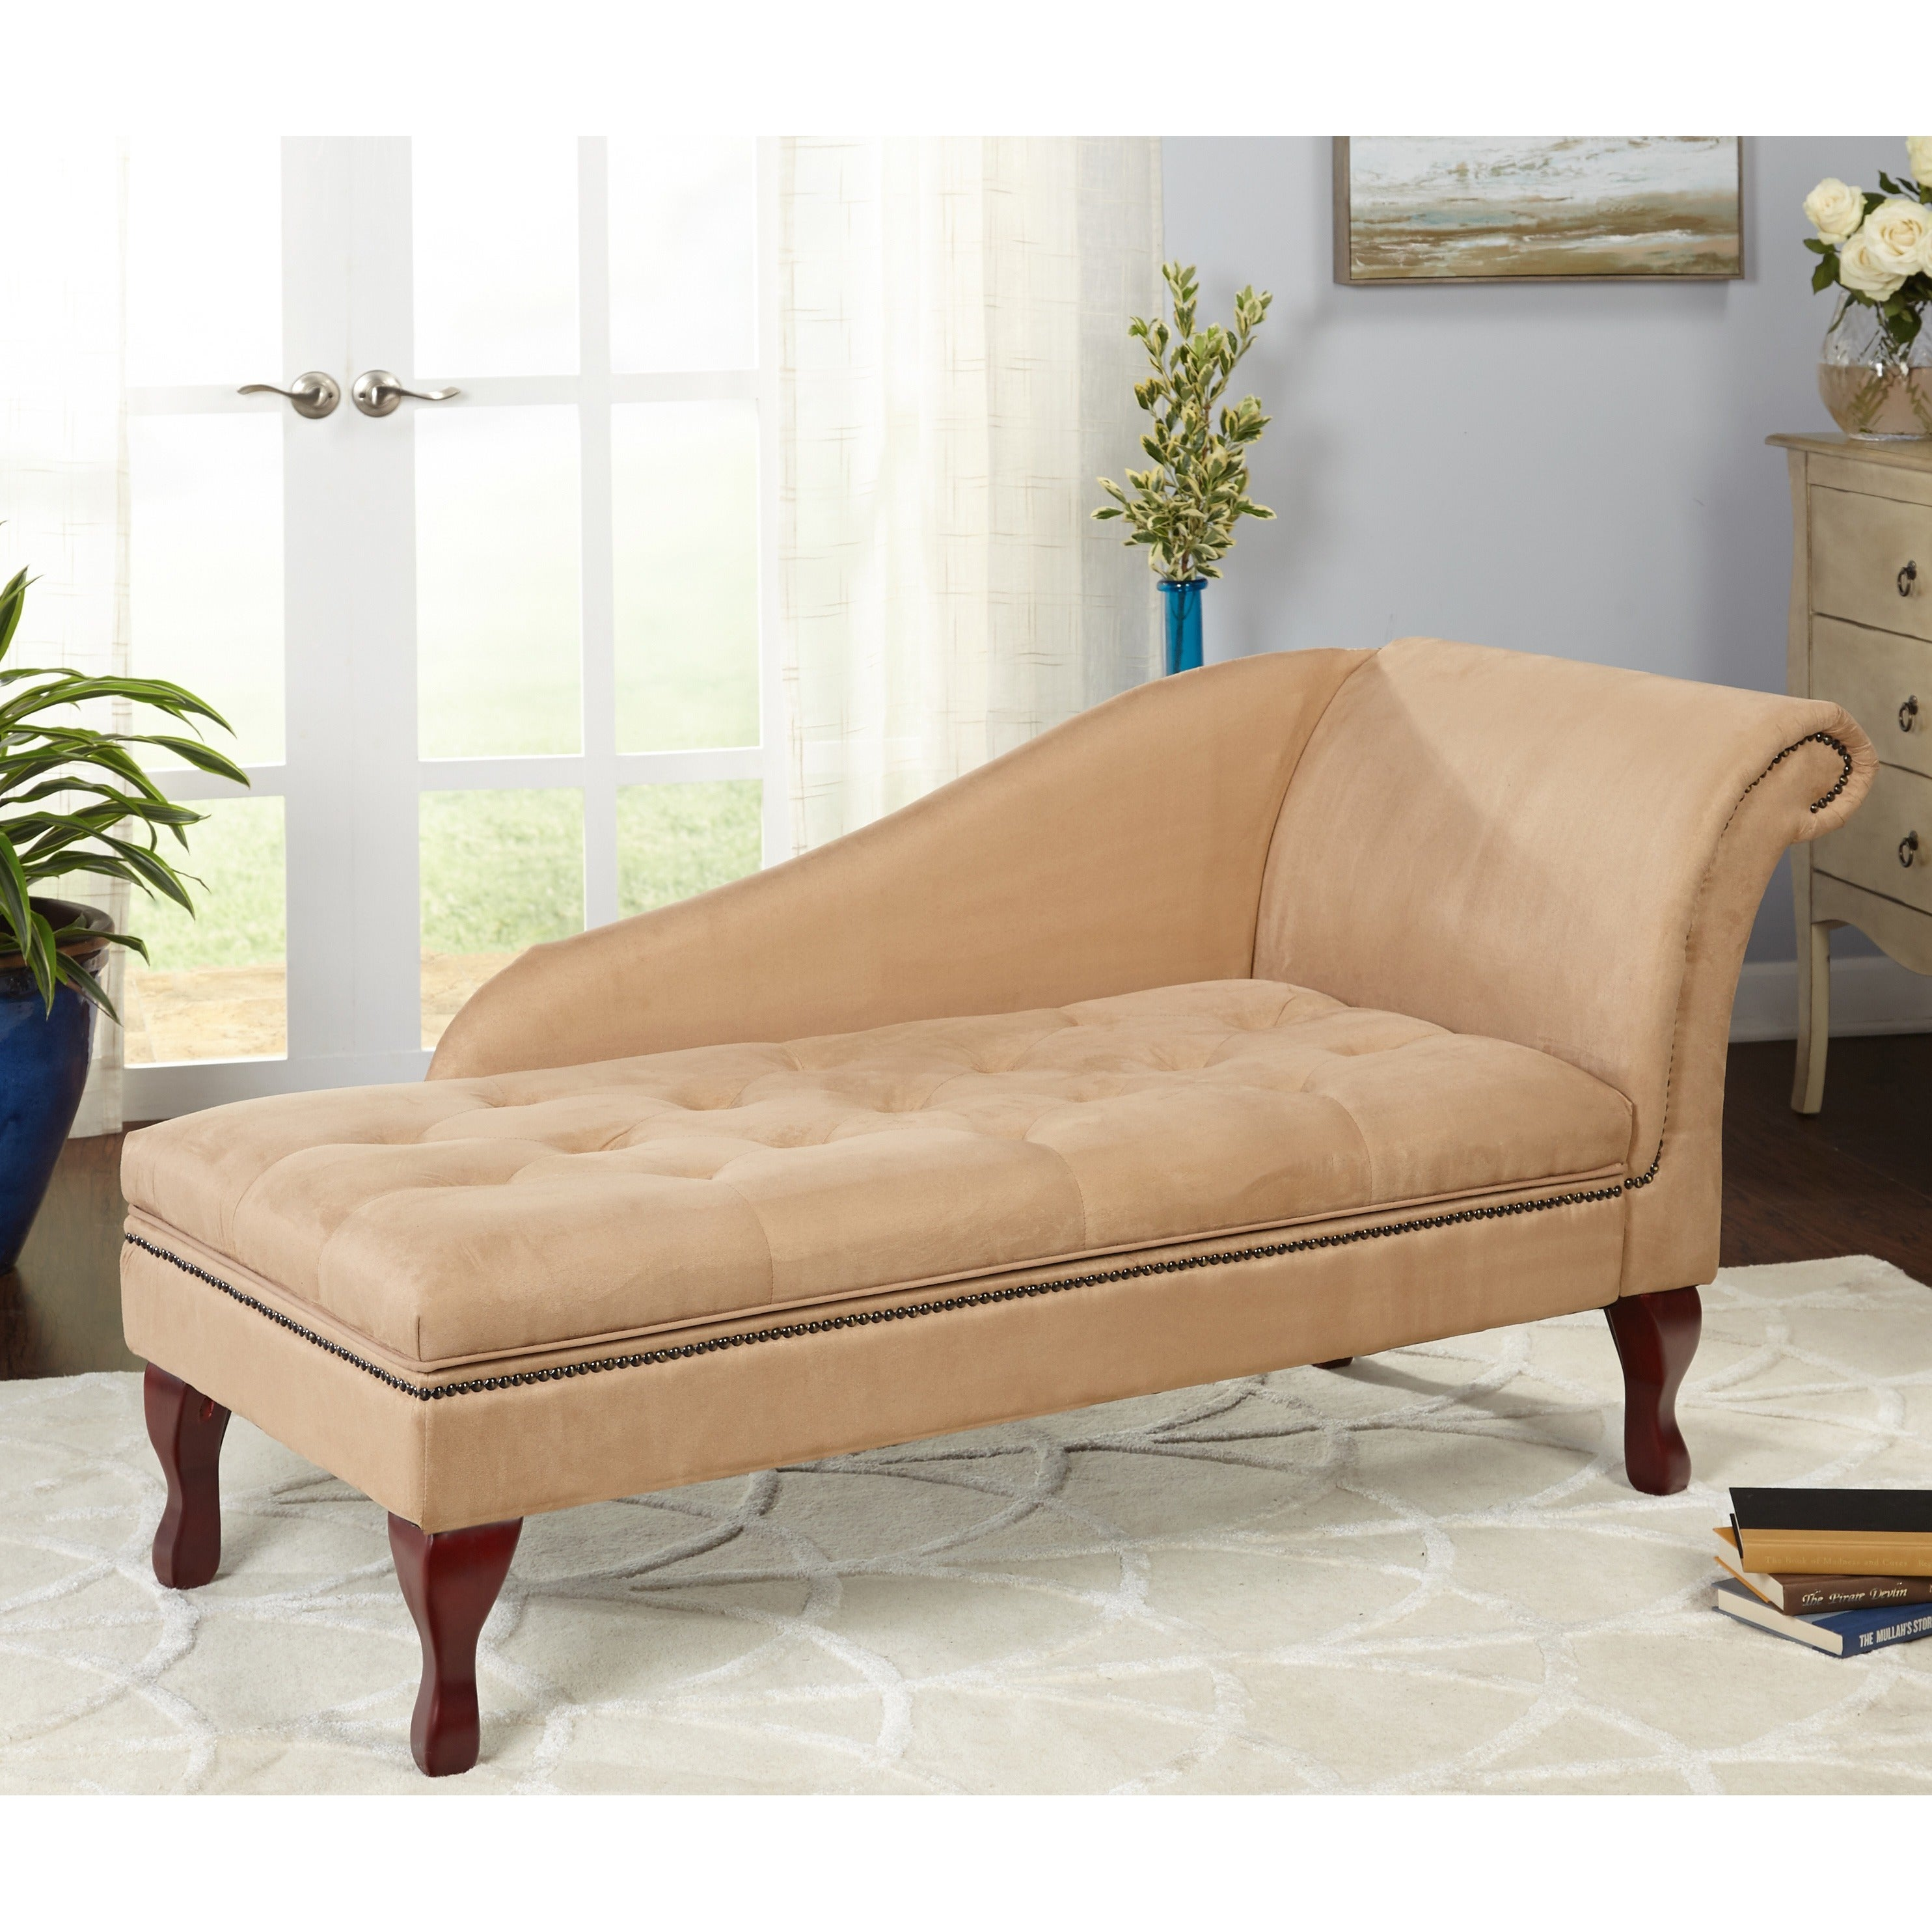 simple living tan chaise lounge with storage  free shipping today overstockcom  . simple living tan chaise lounge with storage  free shipping today